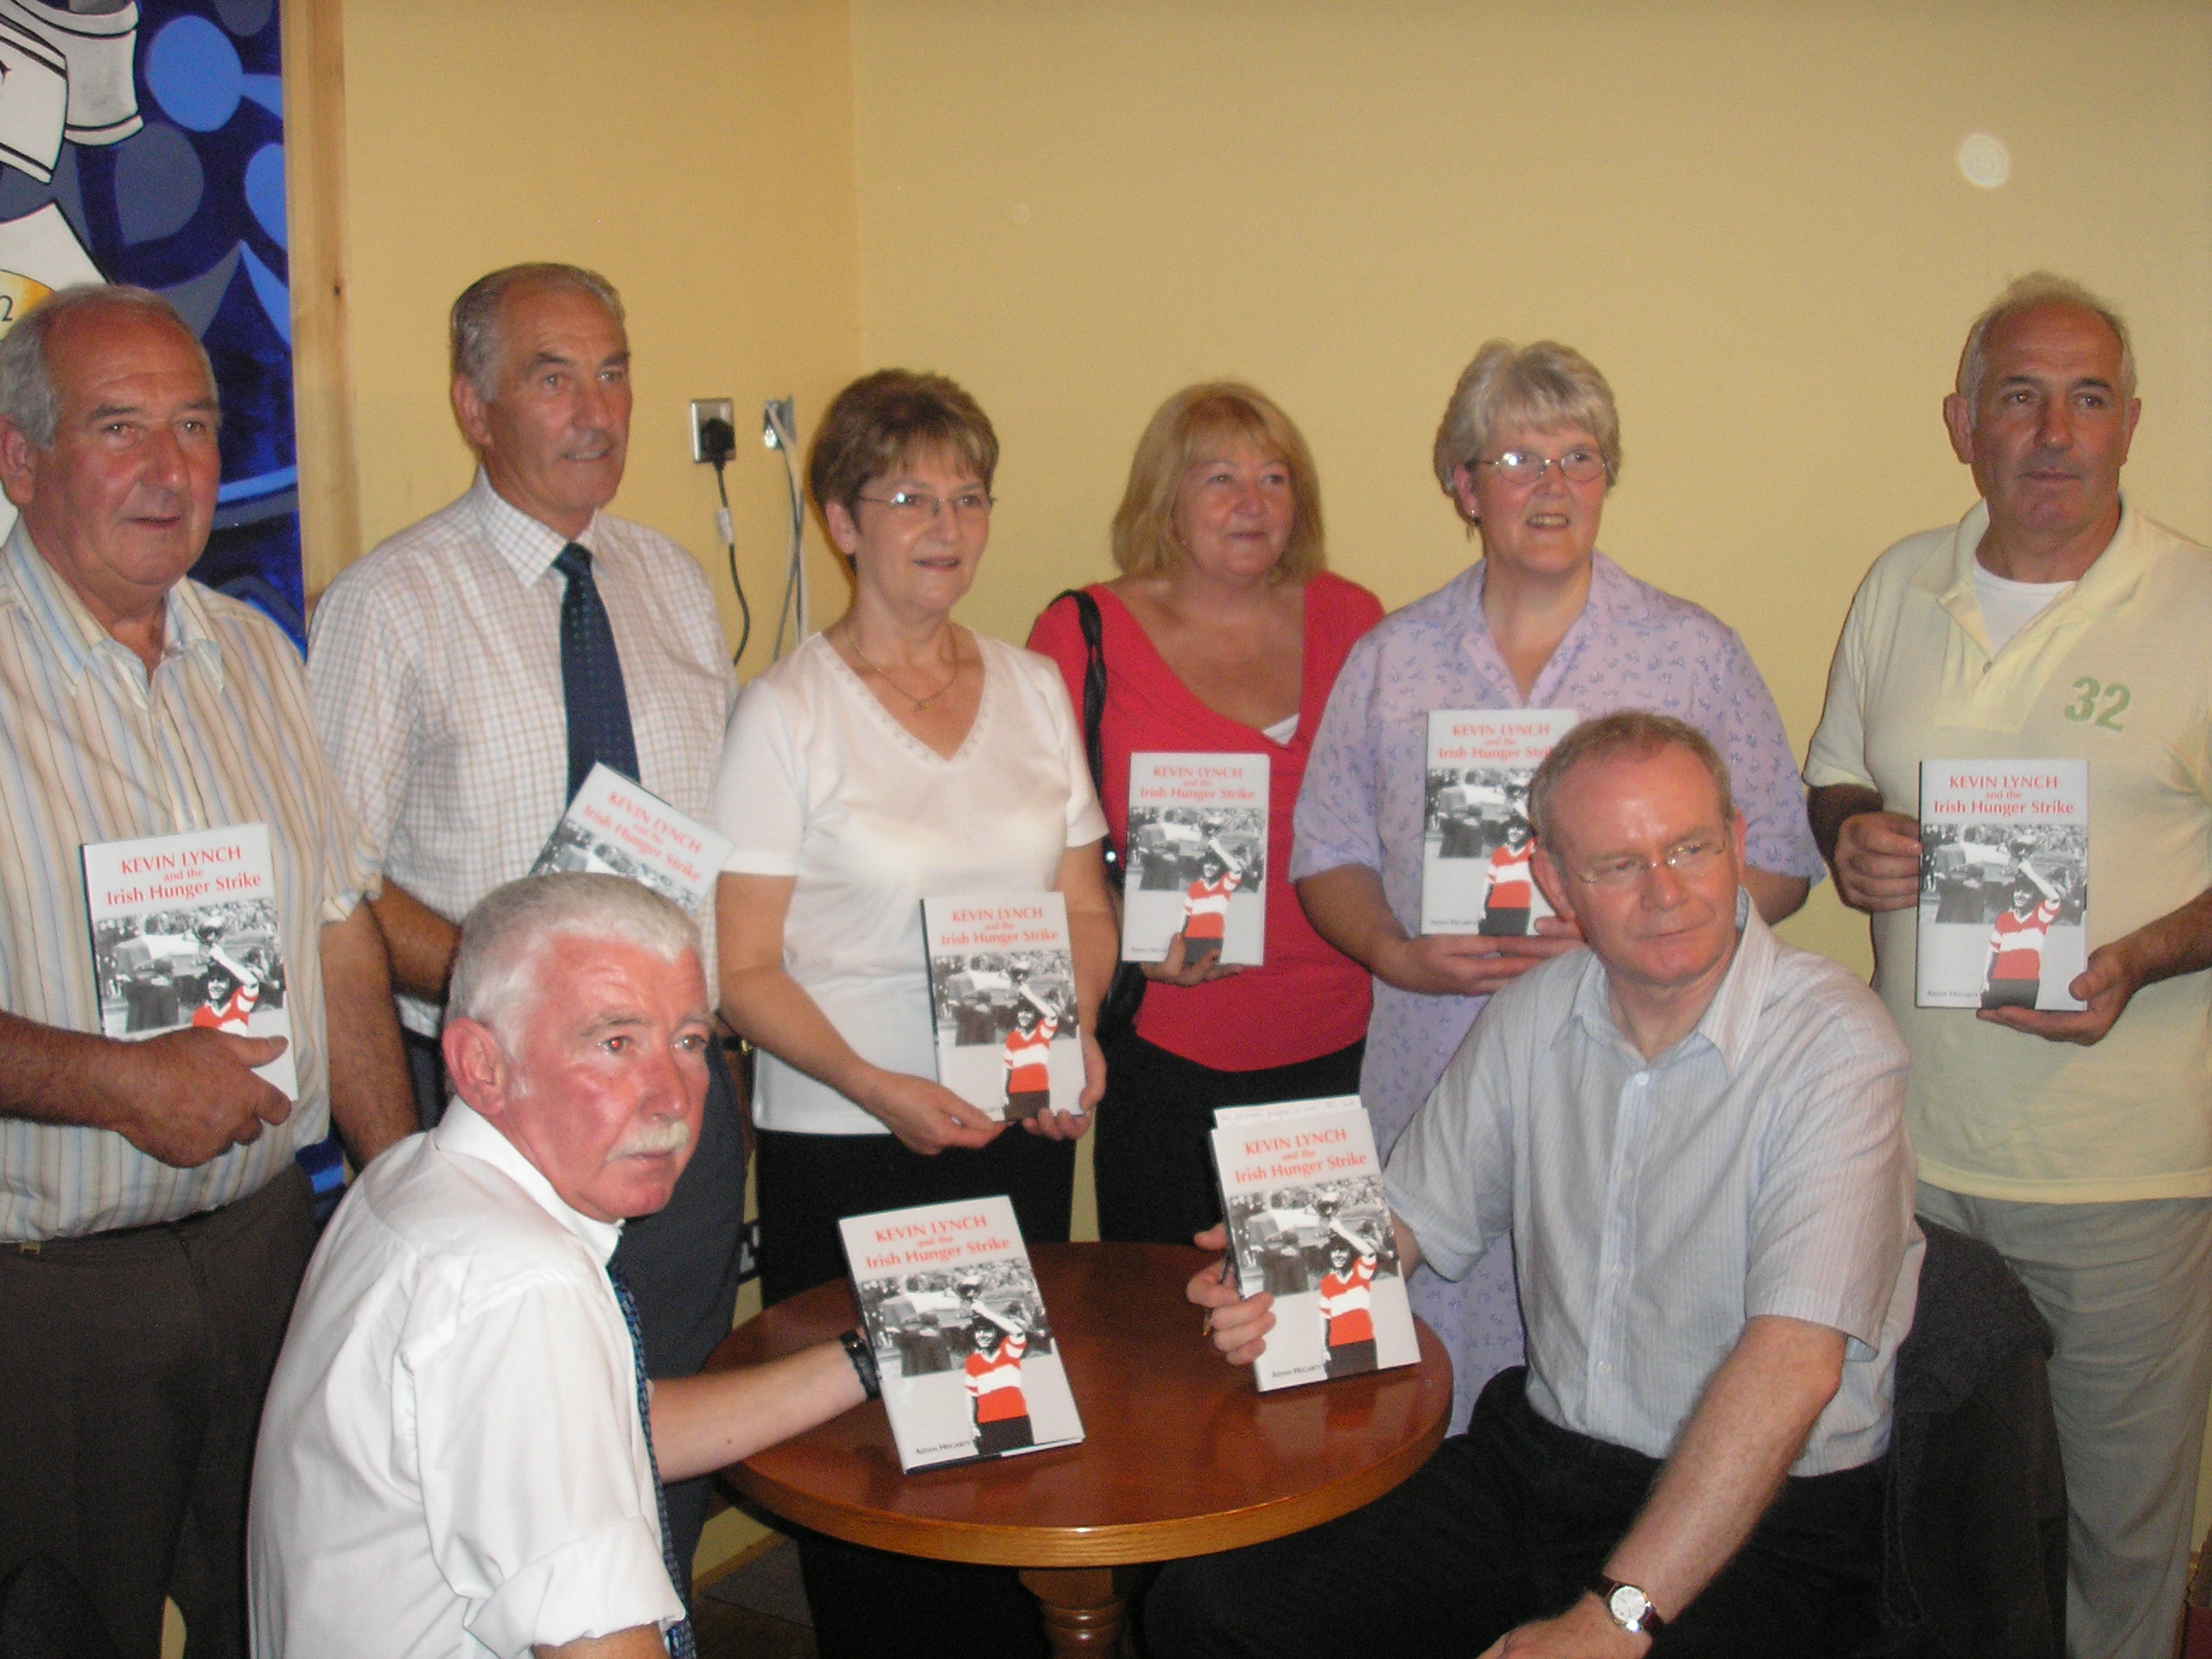 Martin-at-book-on-kevin-lynch-launch-dungiven-29-7-06